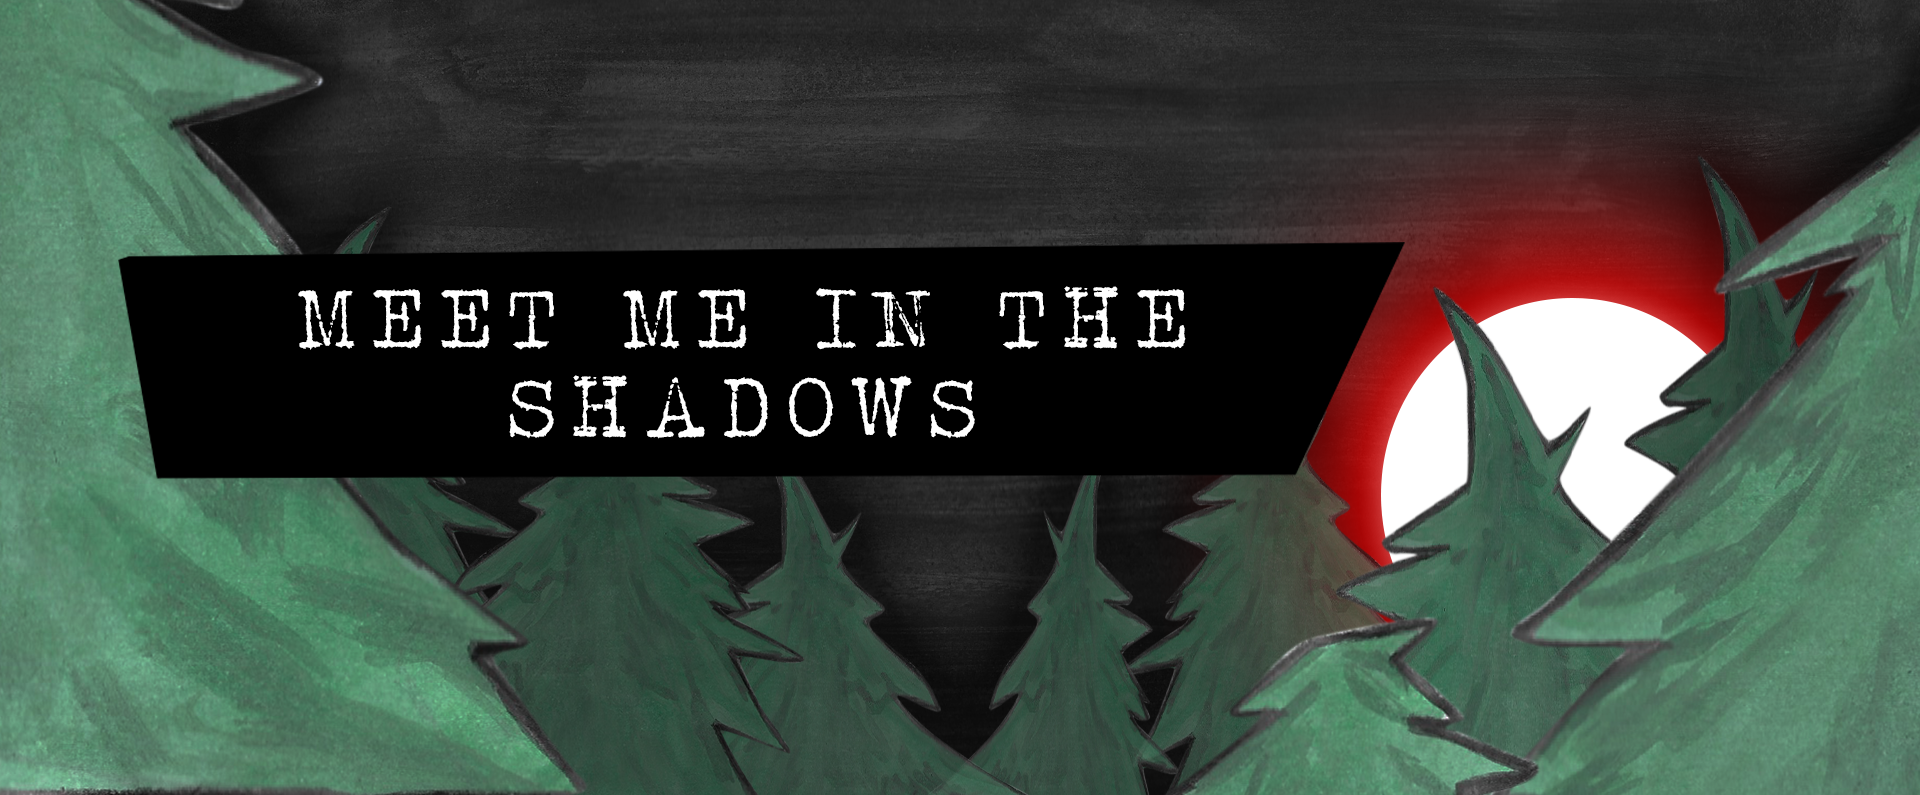 Meet Me in The Shadows